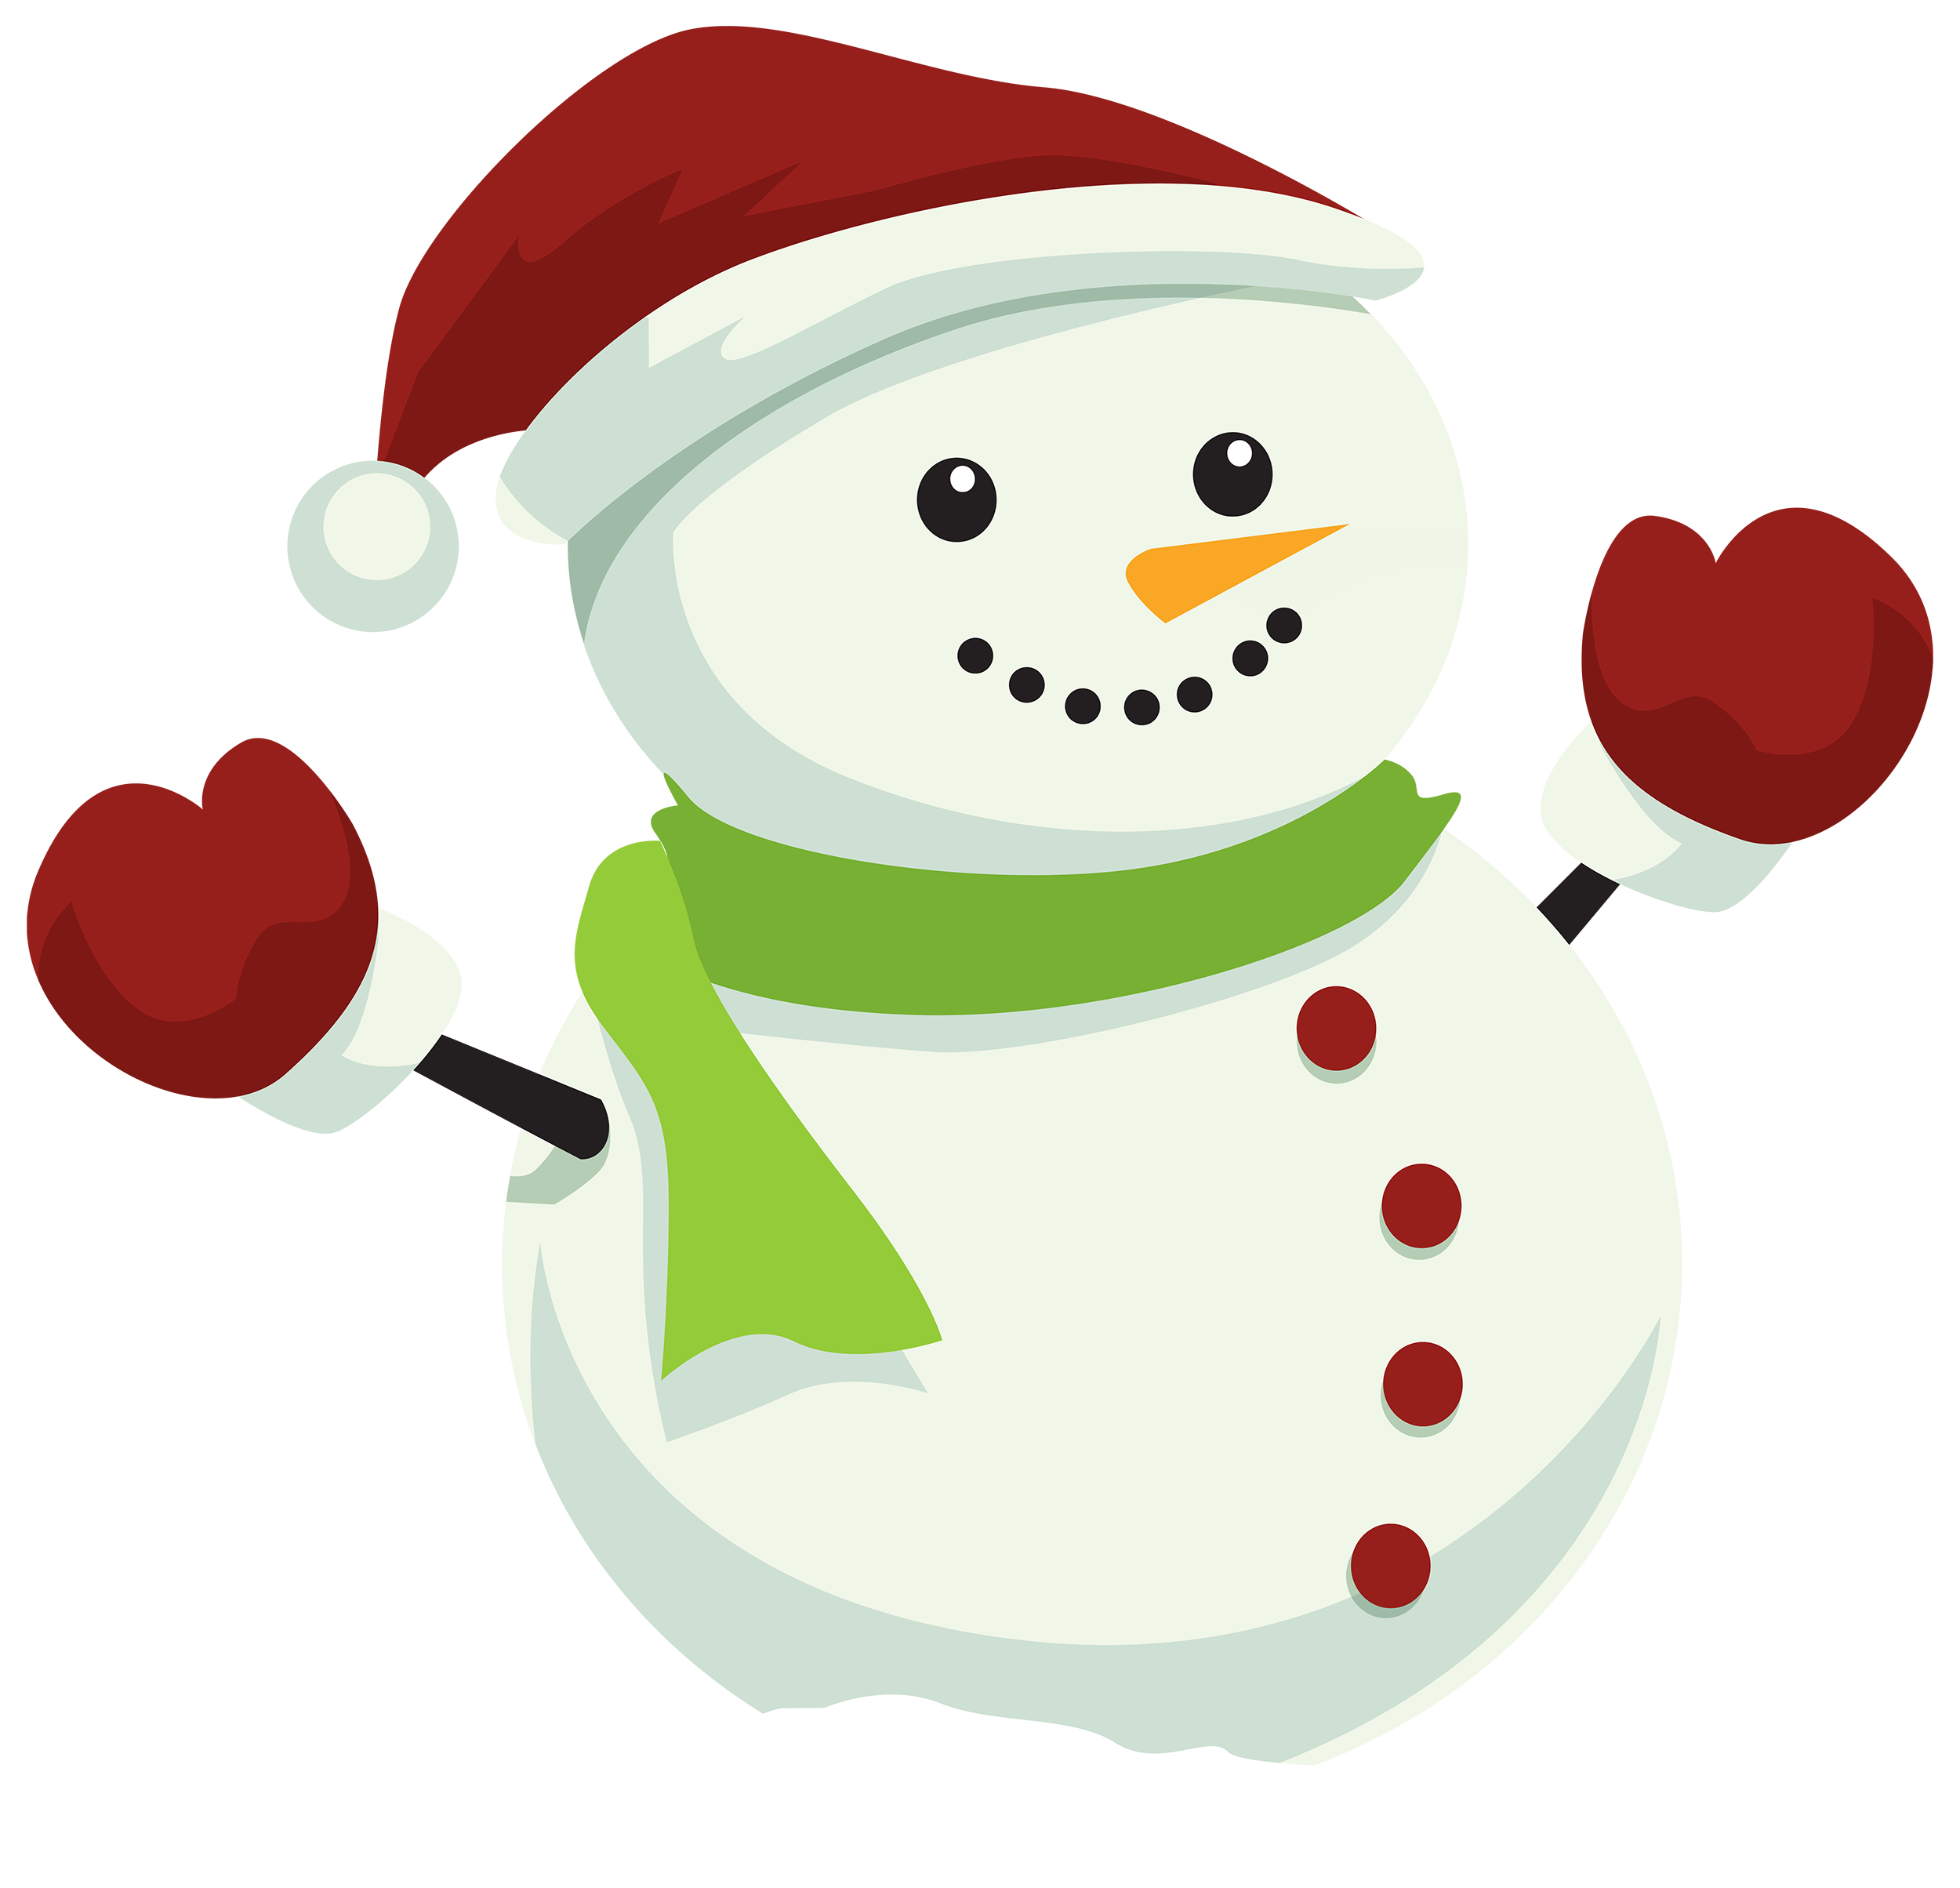 Download For Free Snowman Png In High Resolution #30766.